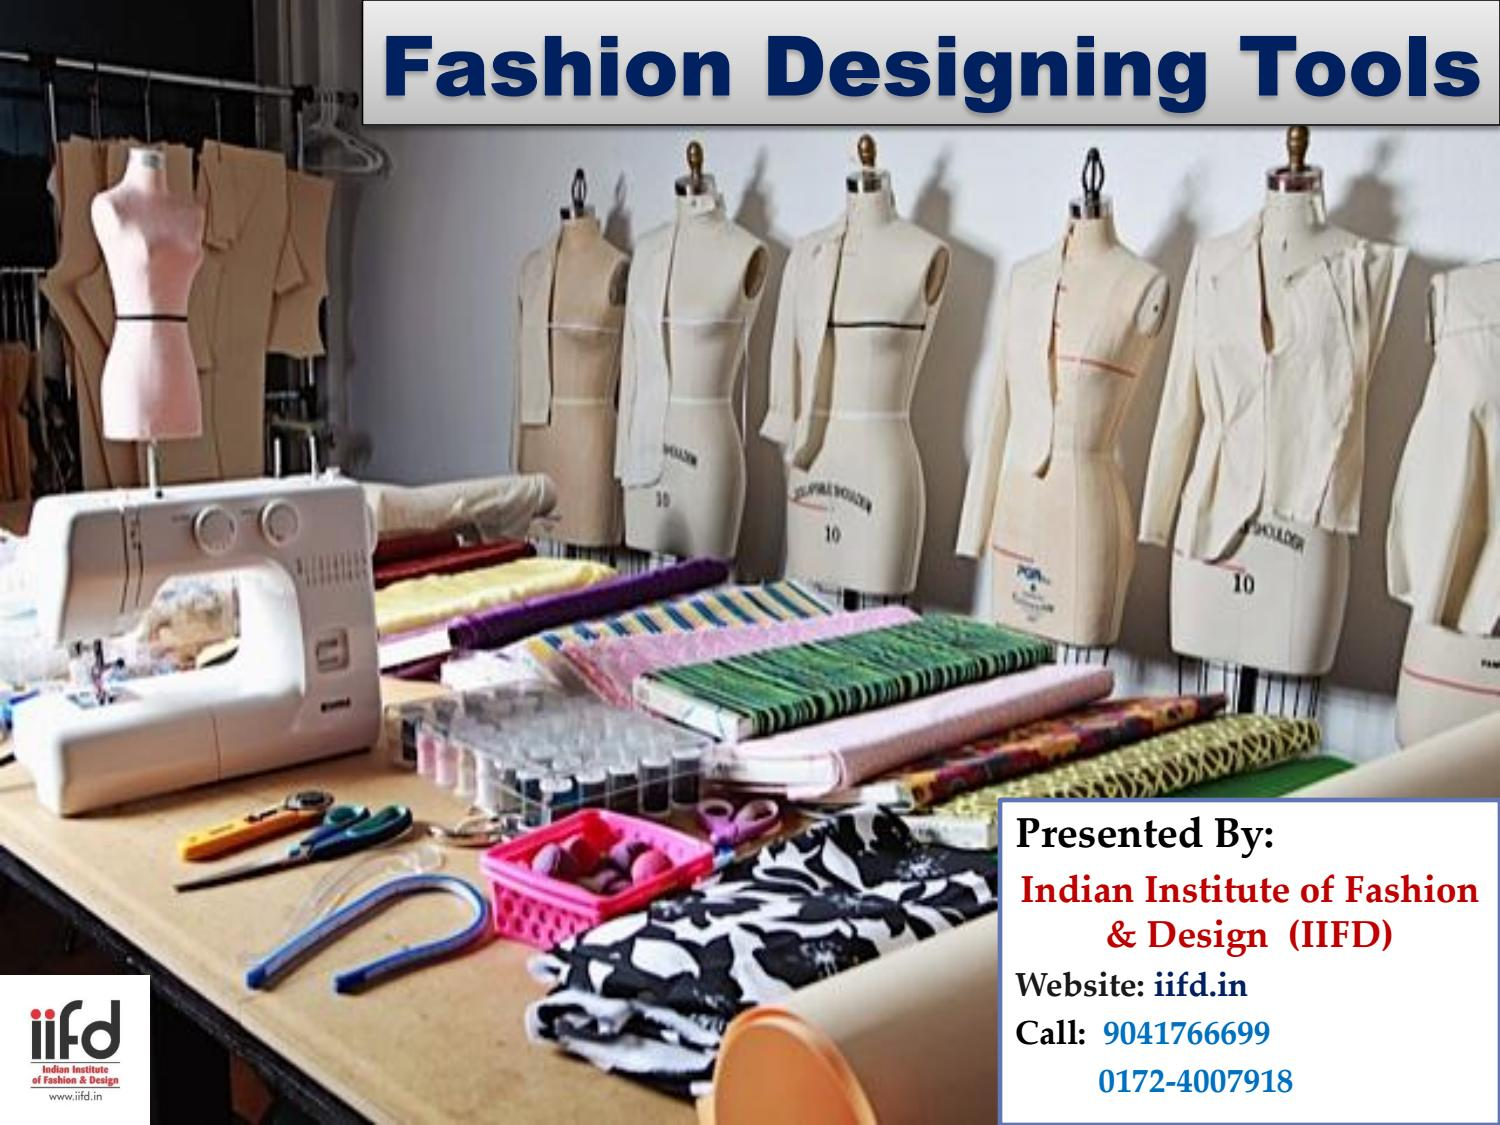 Most Important Fashion Designing Tools And Equipment By Indianfashioninstitutechd Issuu